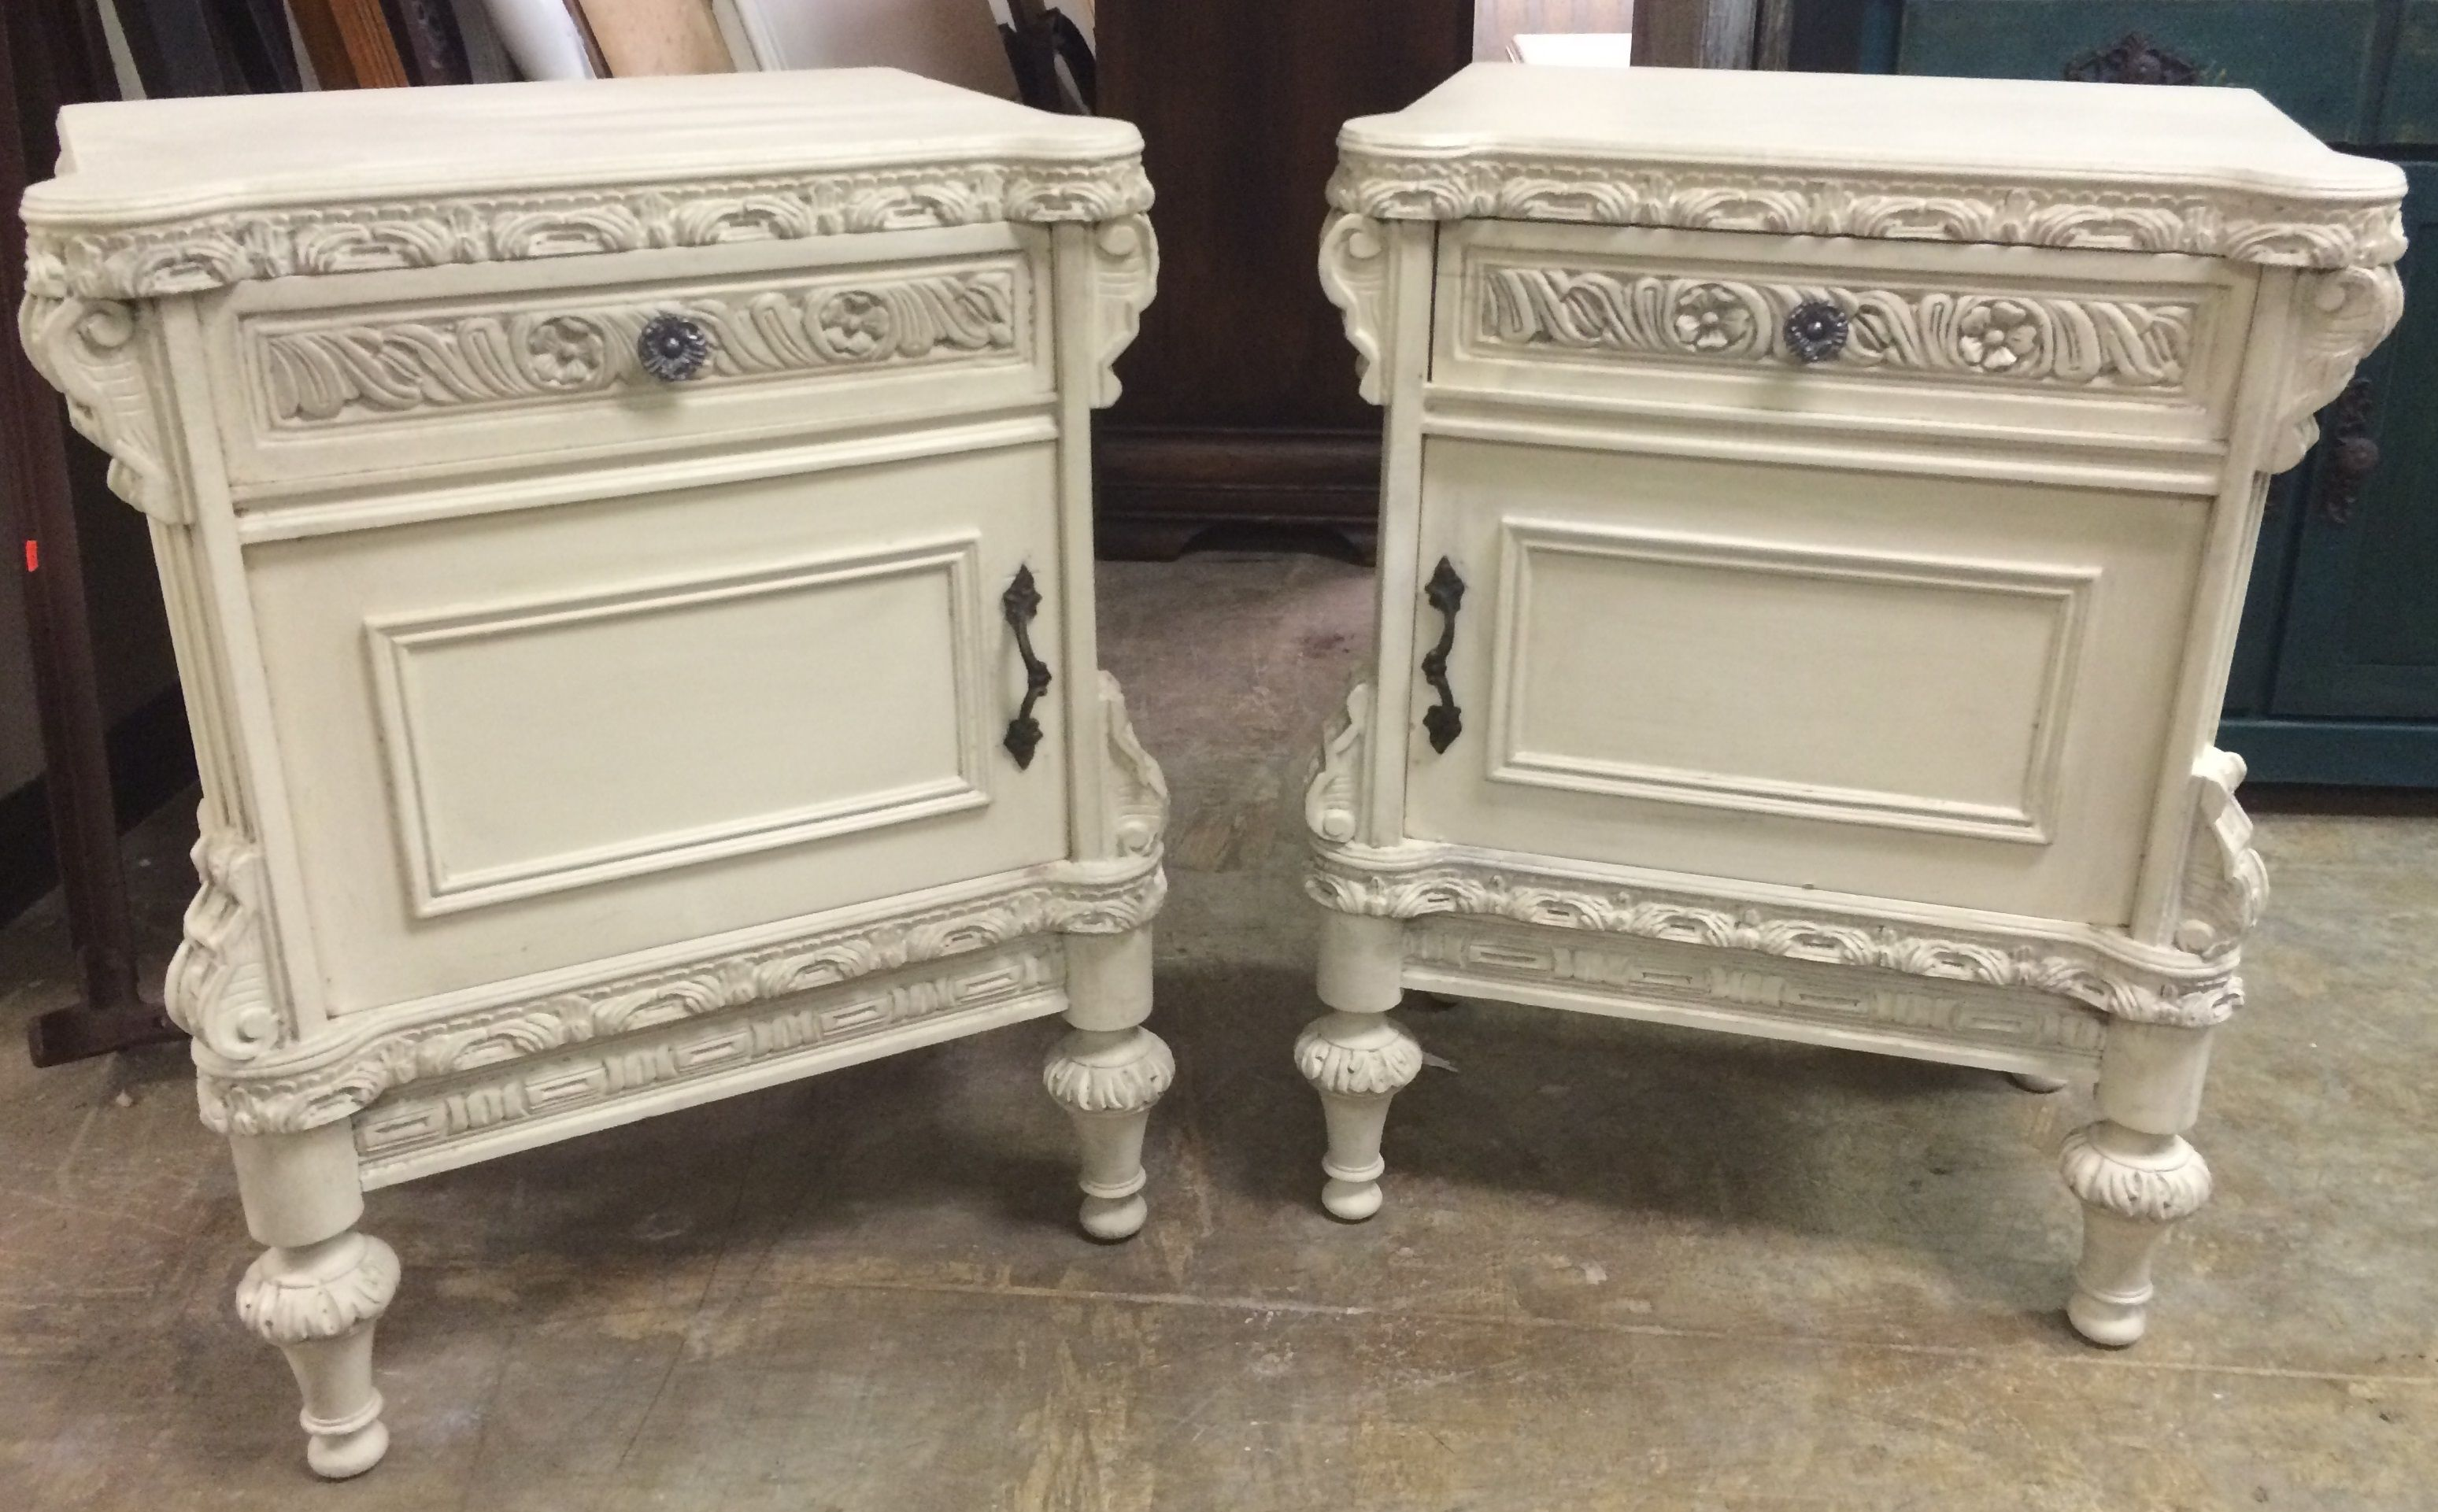 """Pairs of nightstands are hard for me to find so when we find pairs like these I get excited! These ones came all the way from France and are at least 75 years old. What do you think? The dimensions are 22"""" L, 15"""" W, 30"""" H. SOLD!! for $325 https://www.pinterest.com/shabbychictexas/my-shabby-chic-nightstands/"""